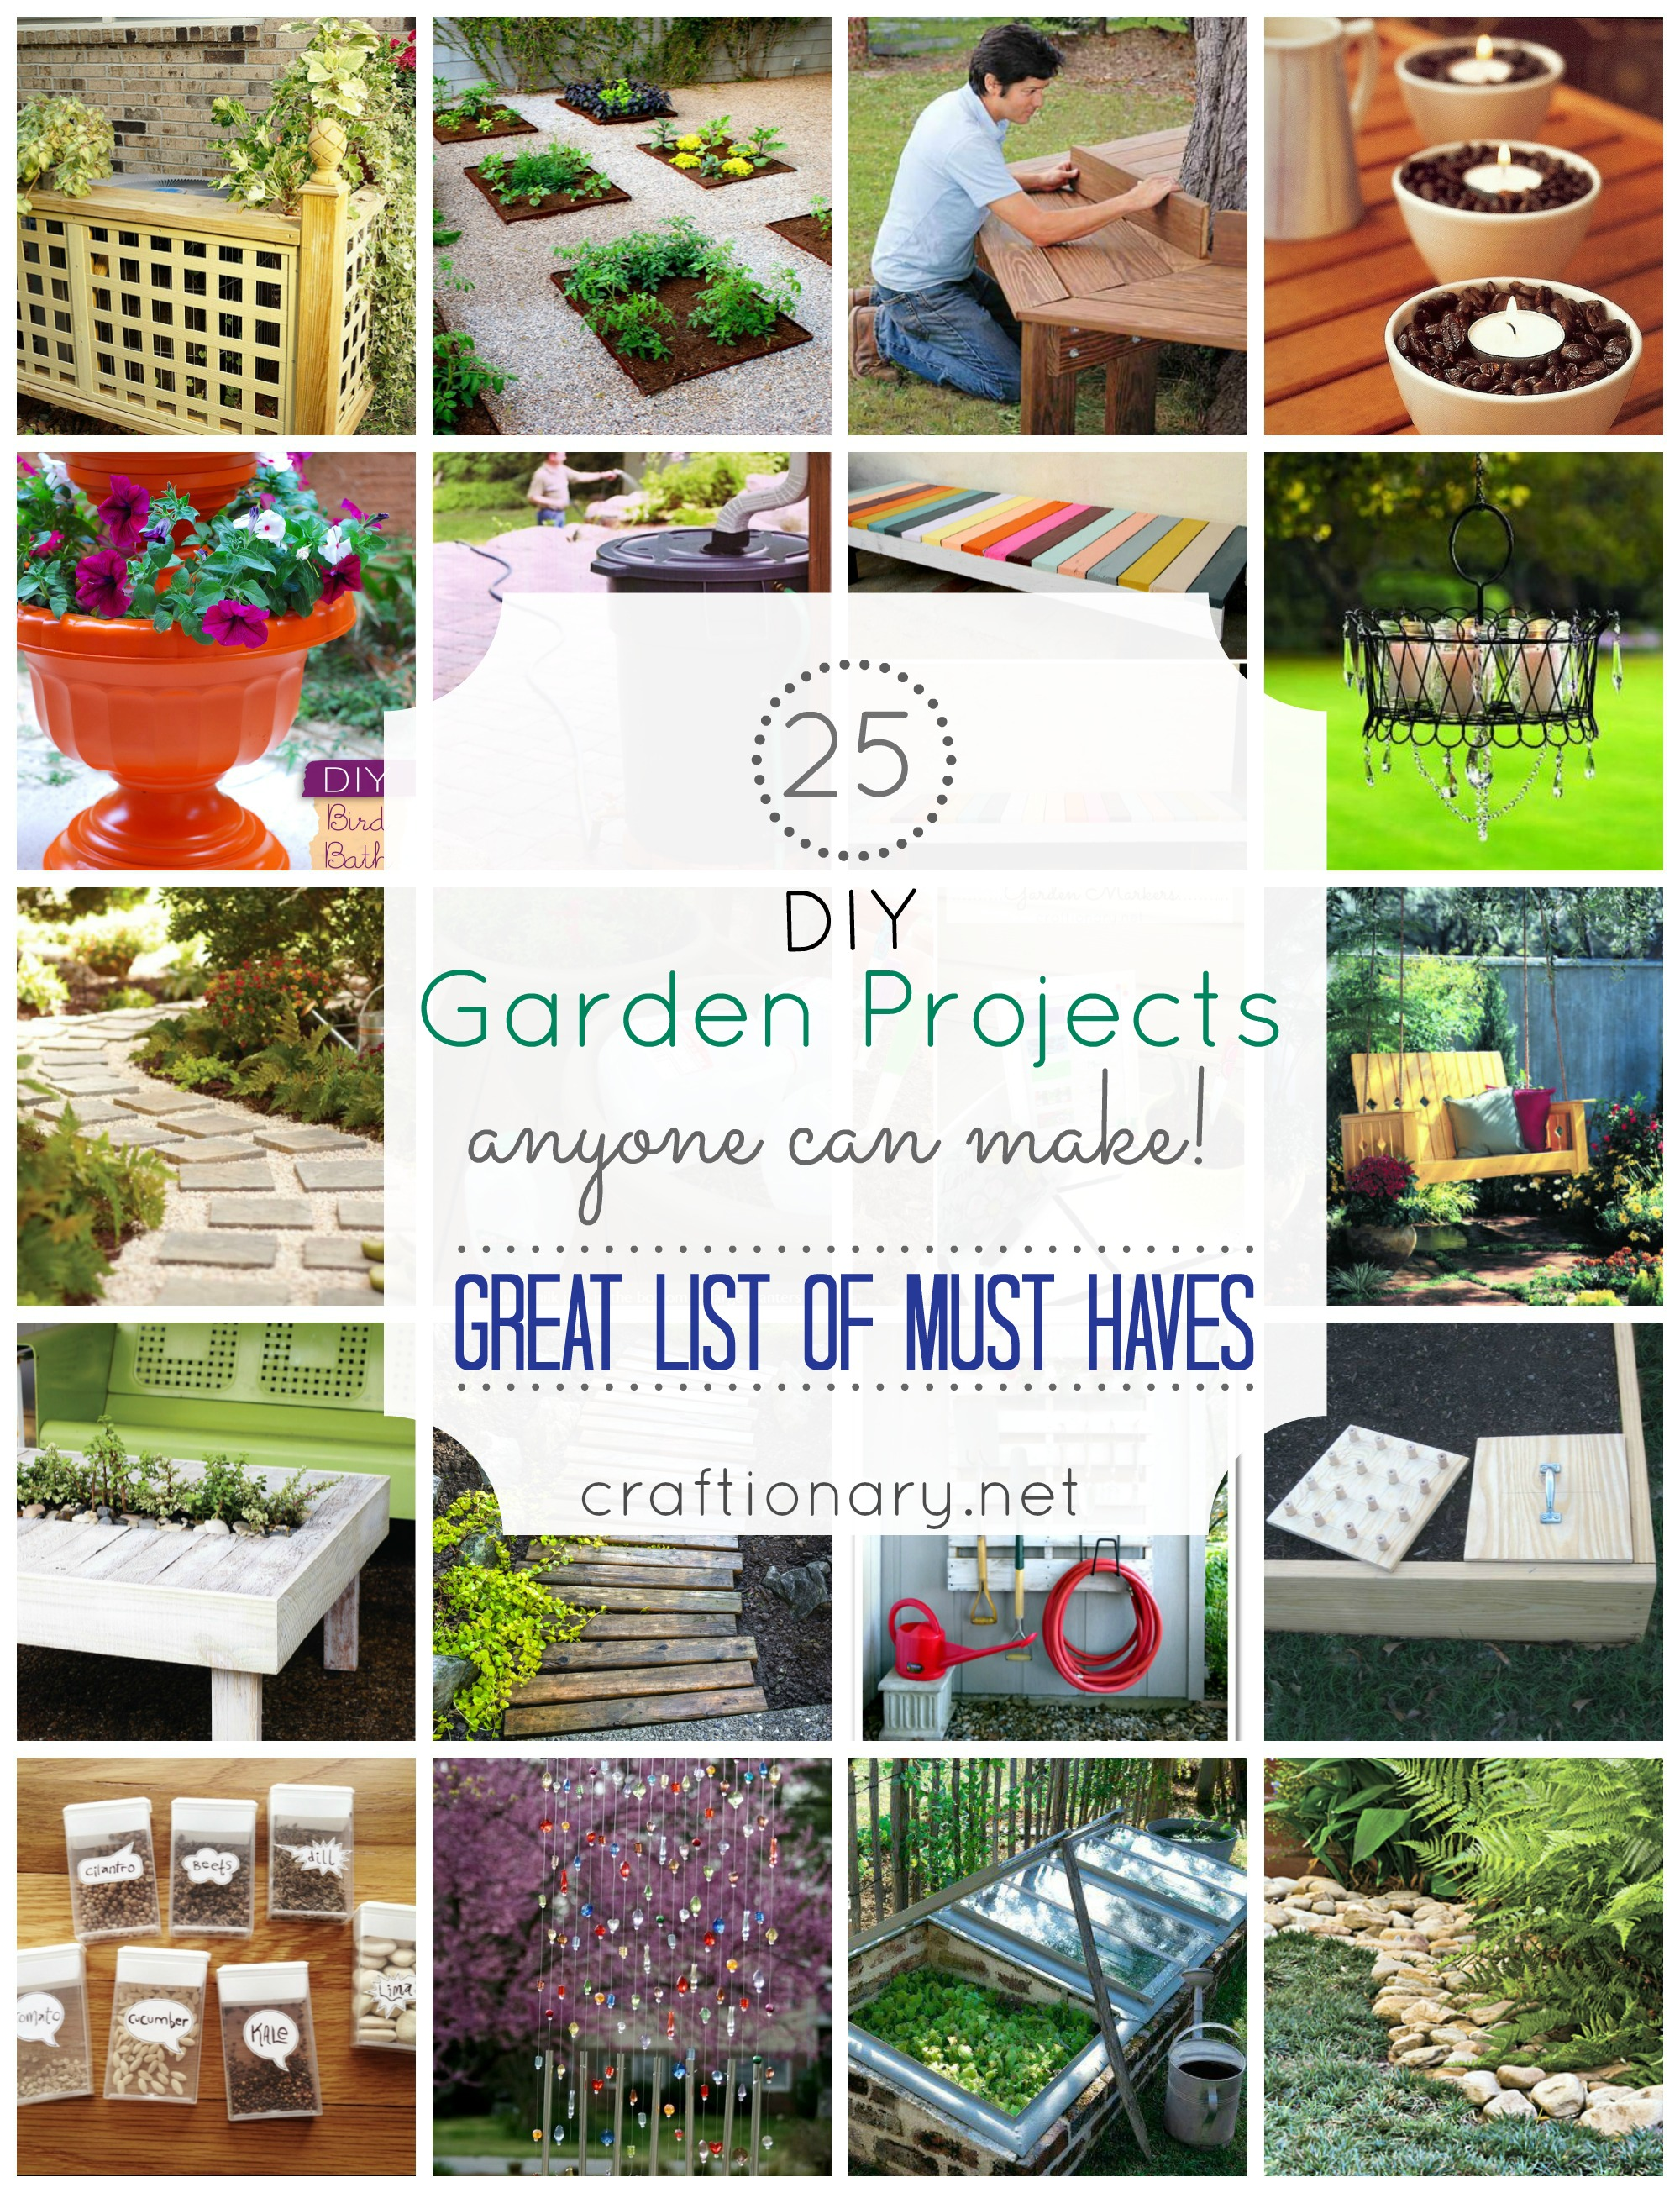 diy garden craft ideas pdf